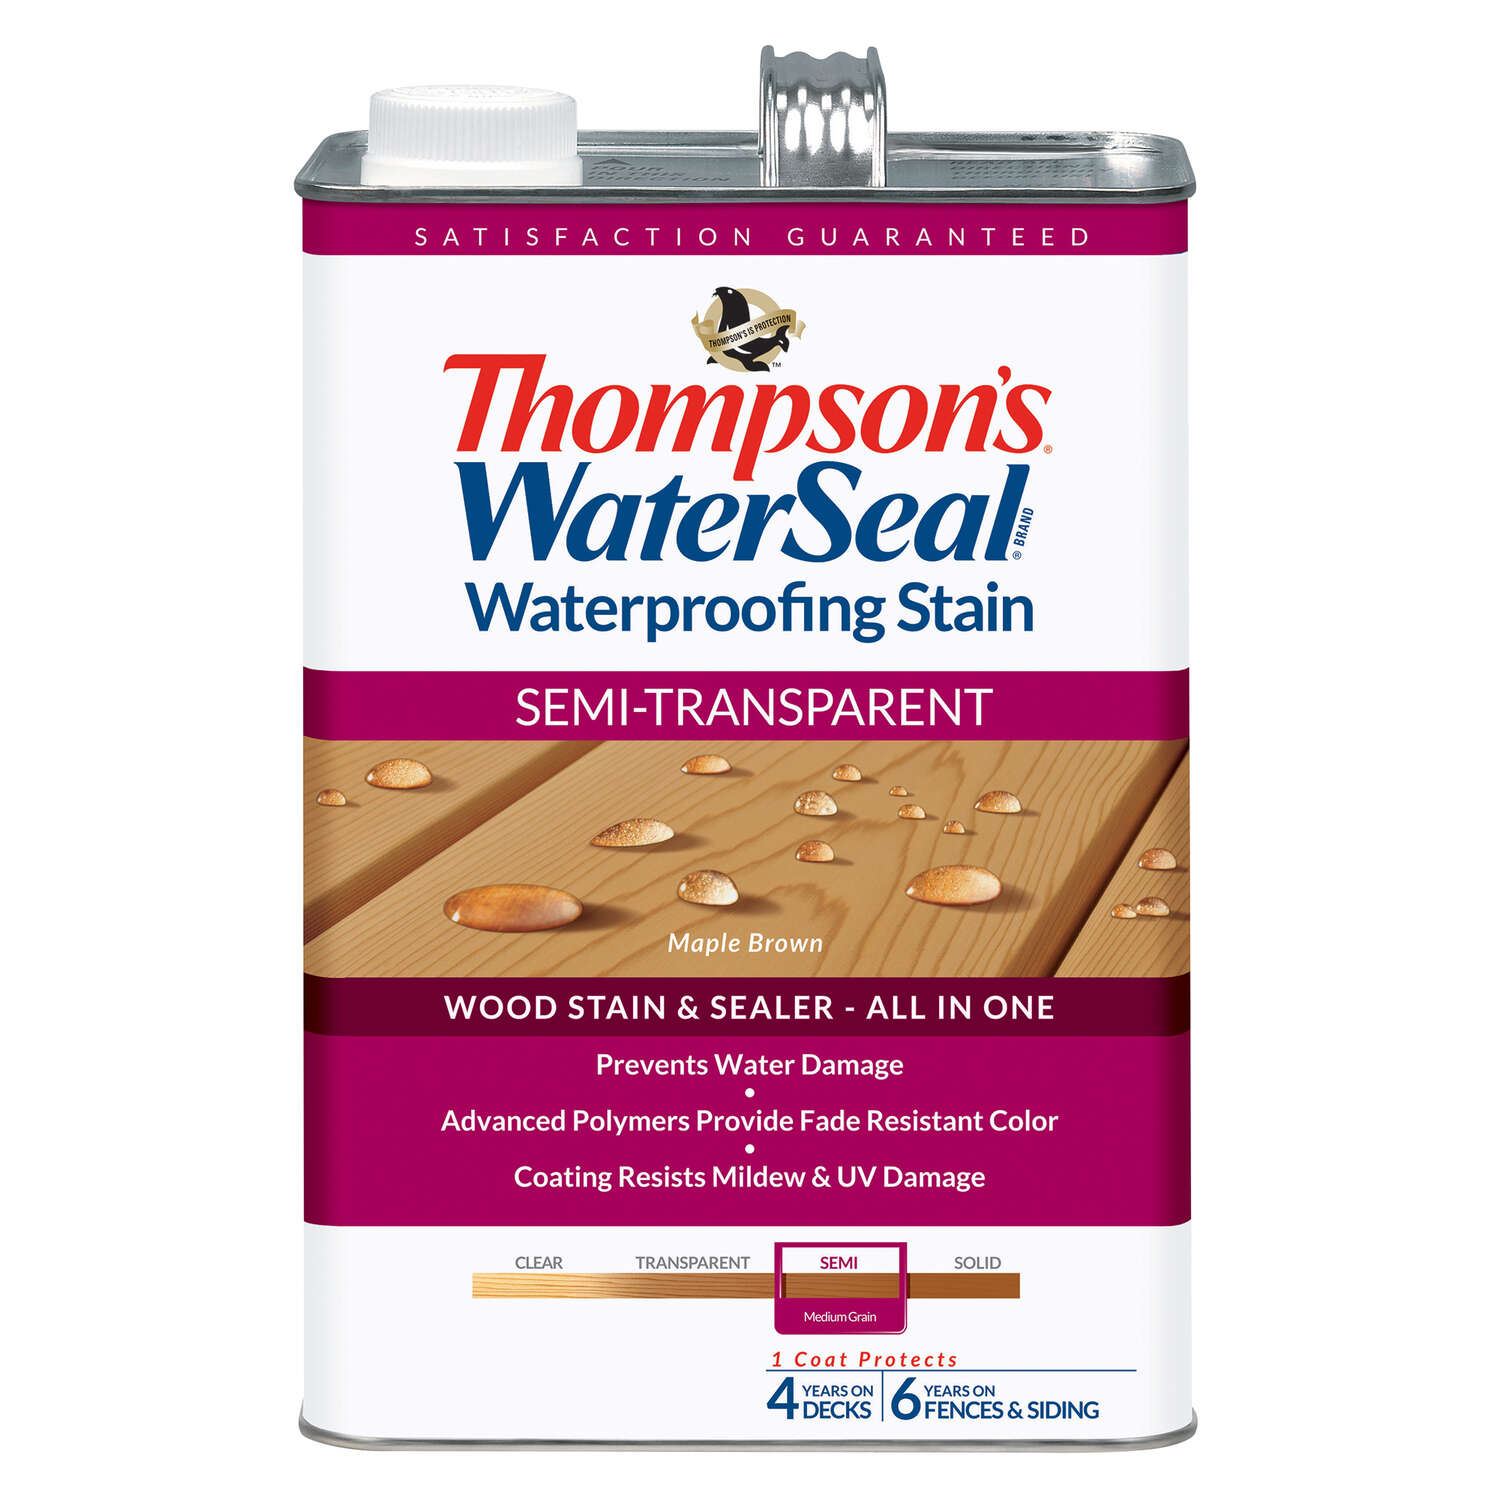 Thompson's WaterSeal  Semi-Transparent  Maple Brown  Waterproofing Wood Stain and Sealer  1 gal.